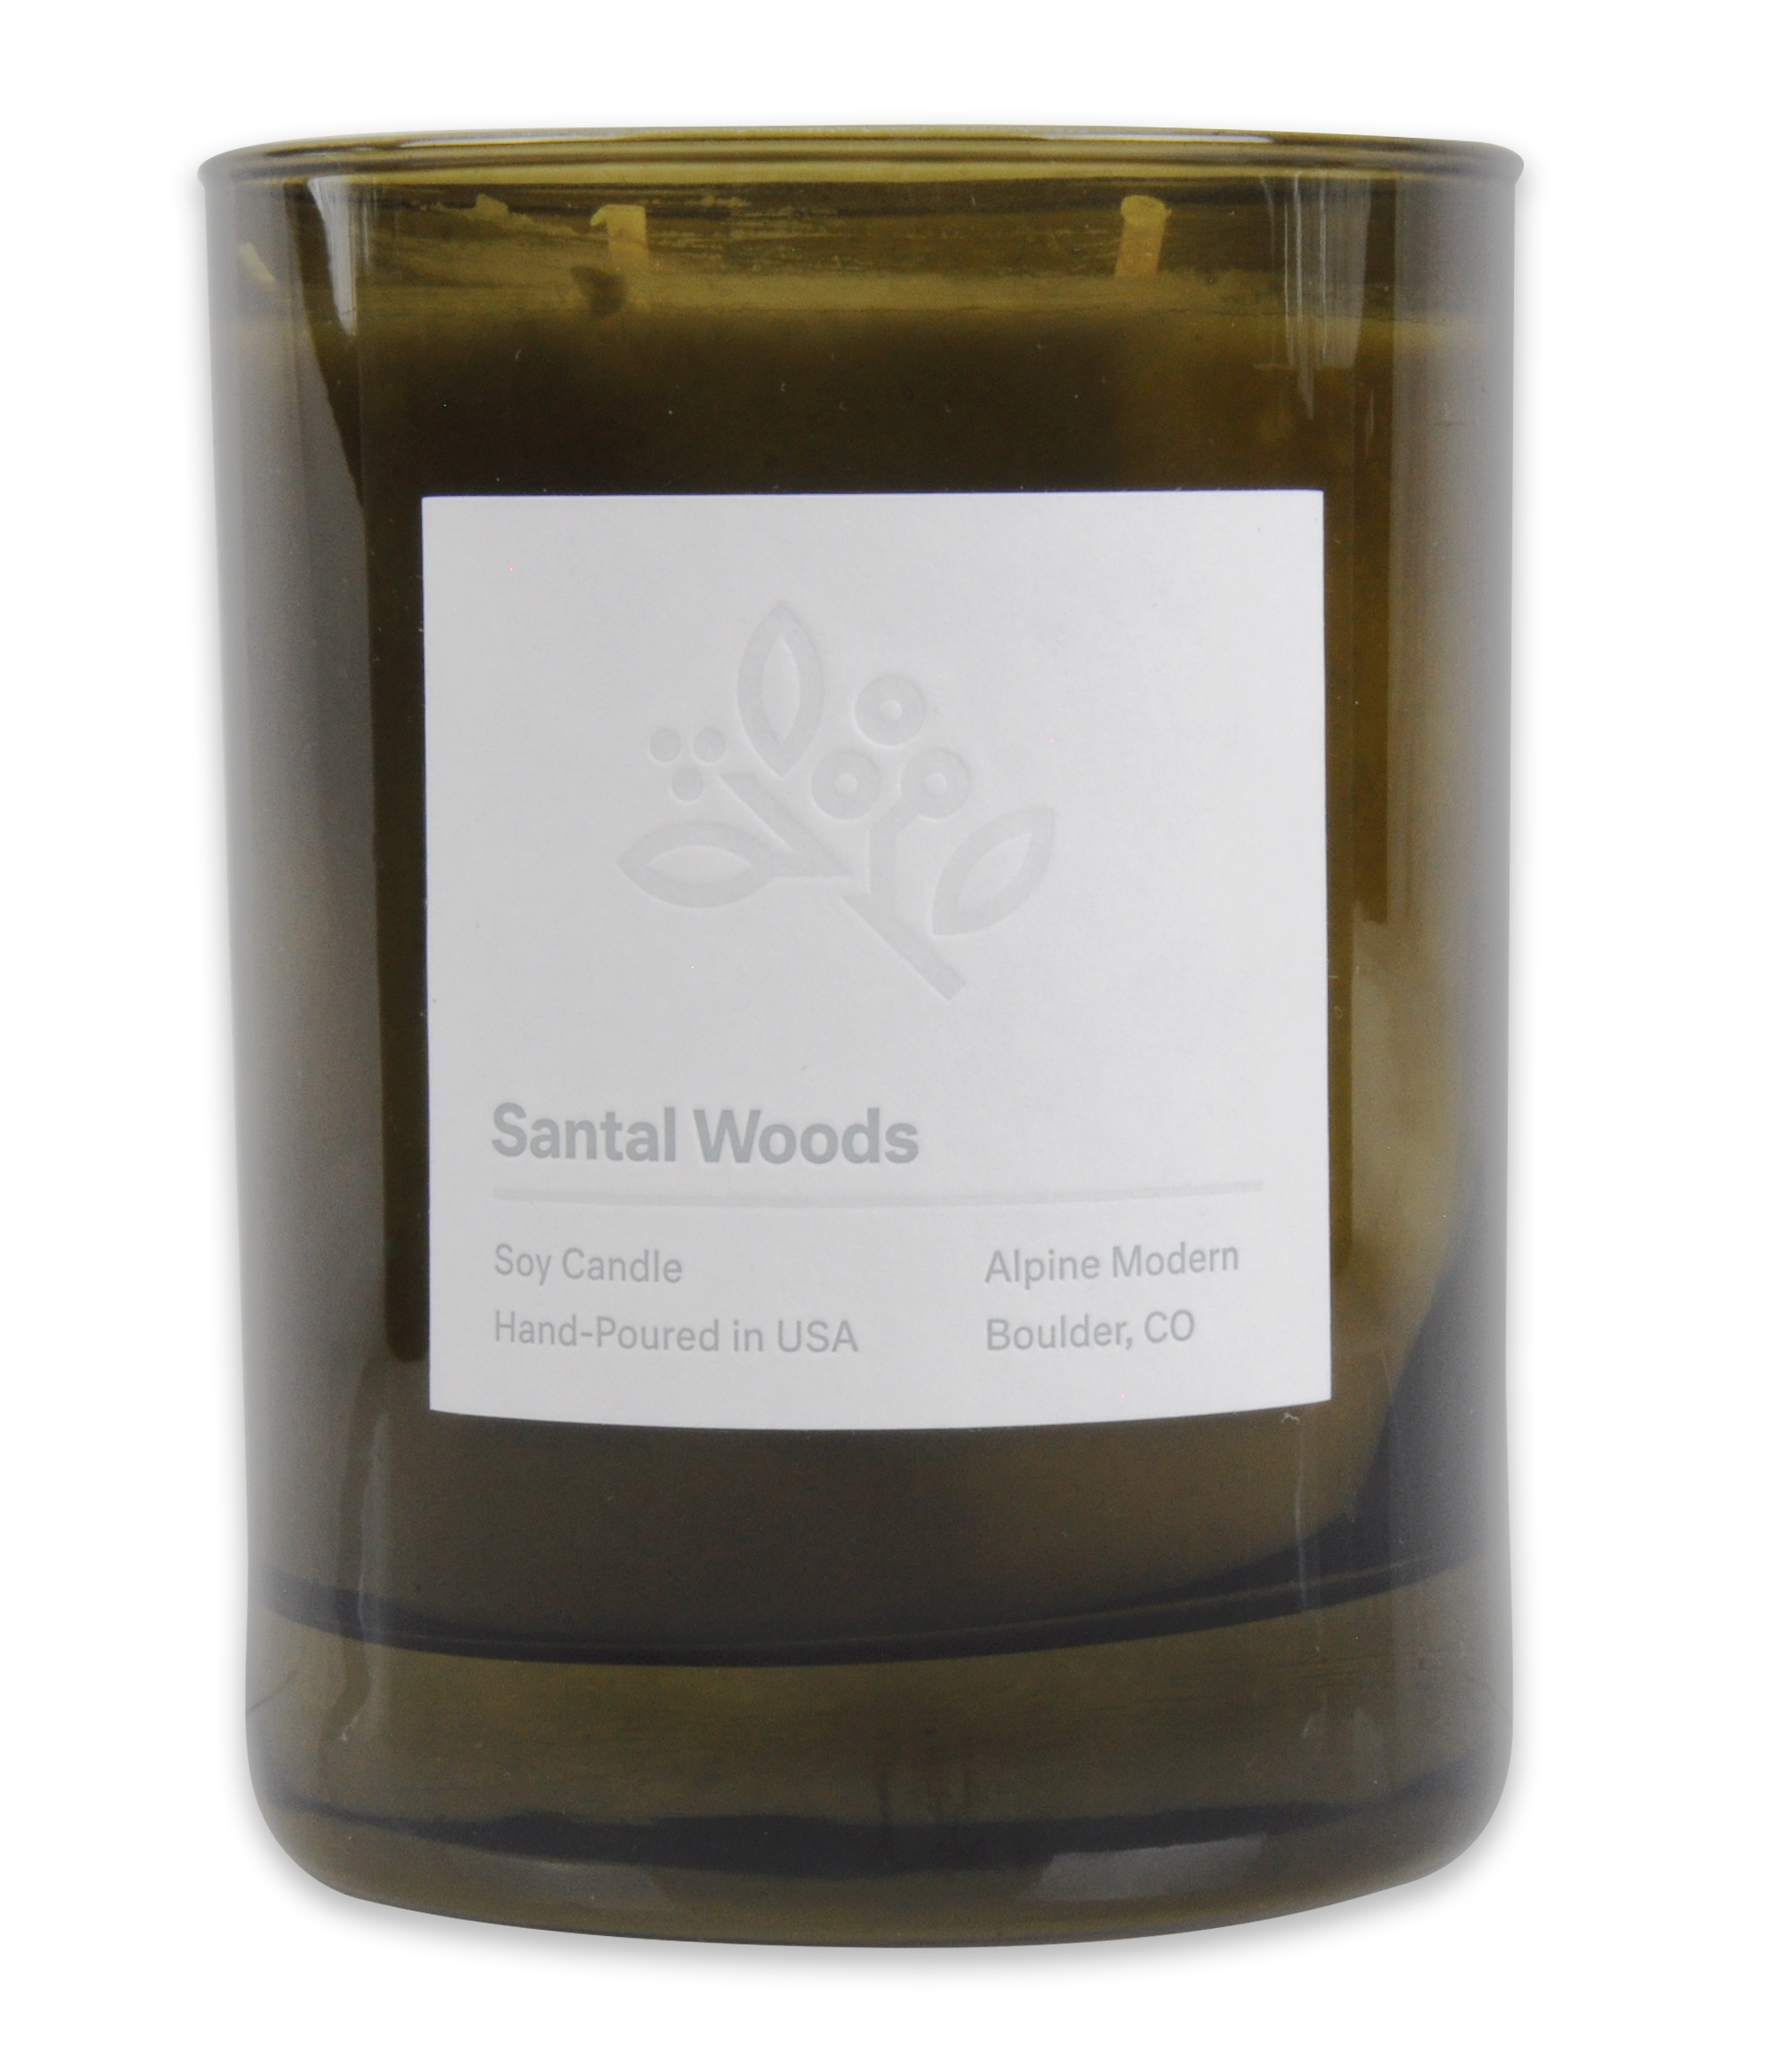 Santal Woods Candle / Alpine Modern